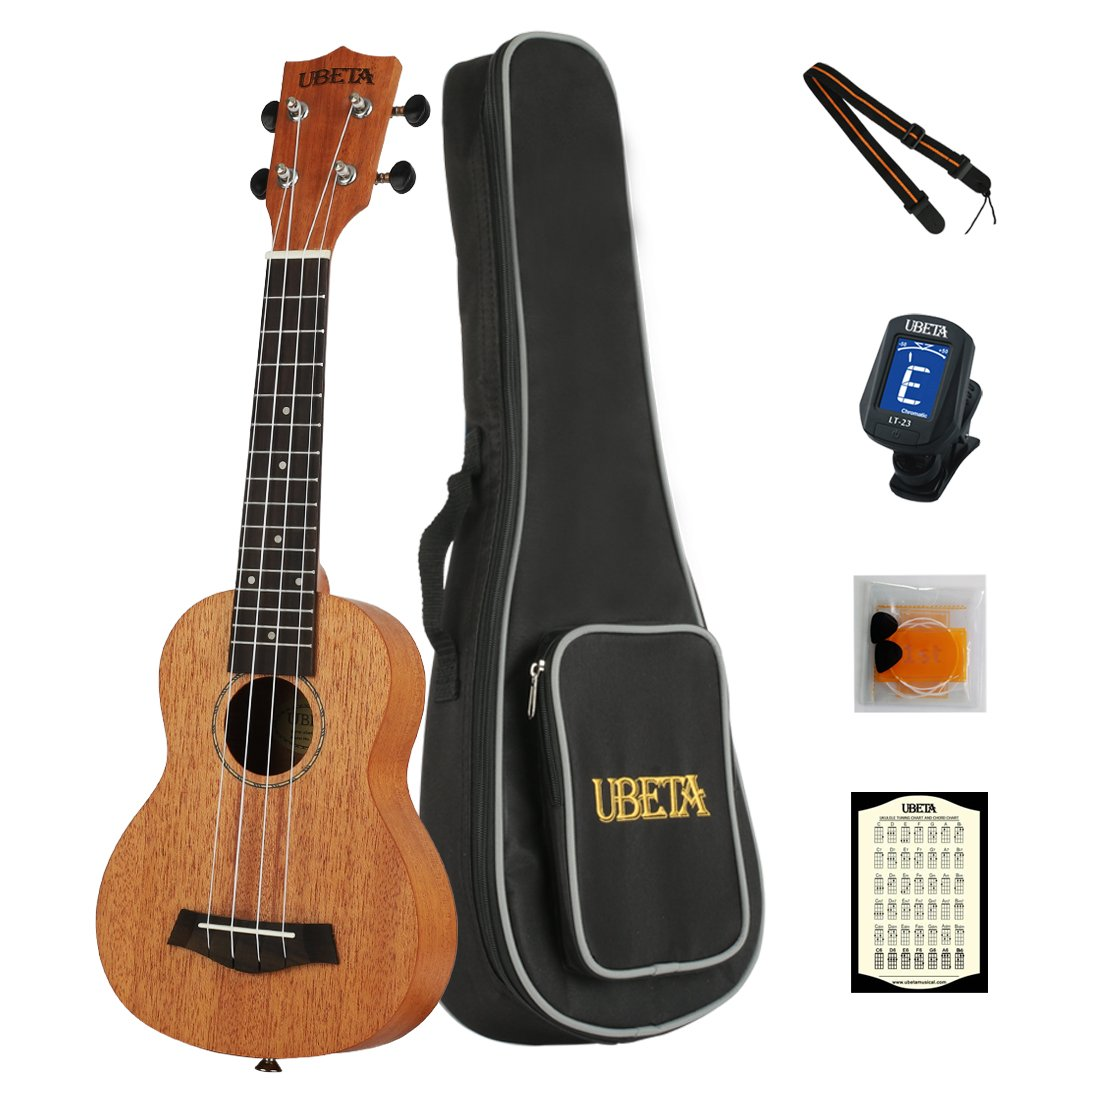 UBETA UC-041 Concert Ukulele Mahogany Aquila strings 6 in 1 Kit: Gig bag clip-on Tuner Picks Strings and Straps